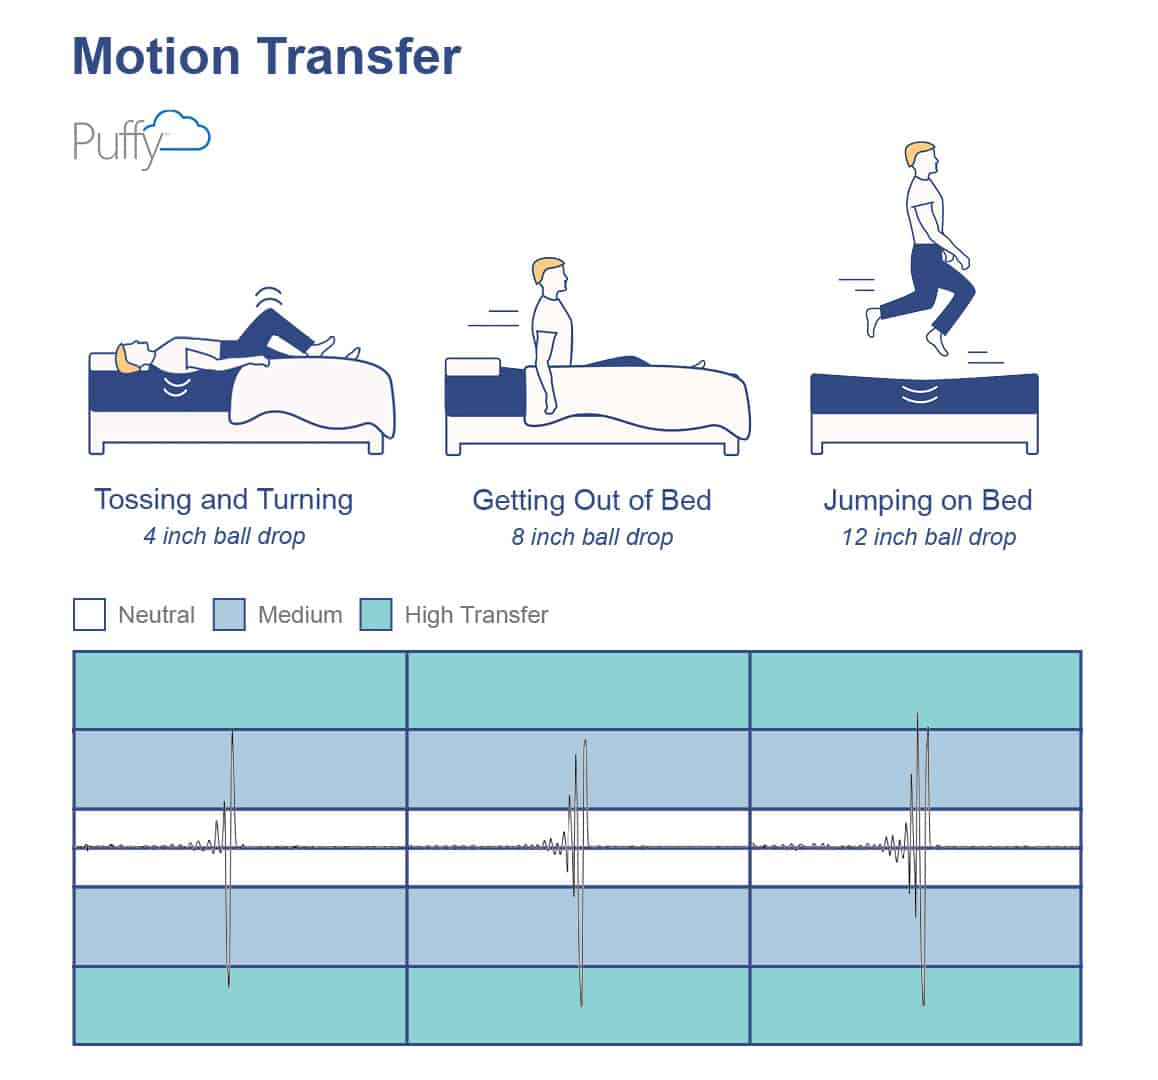 SO_PuffyMotionTransfer Puffy Mattress Review